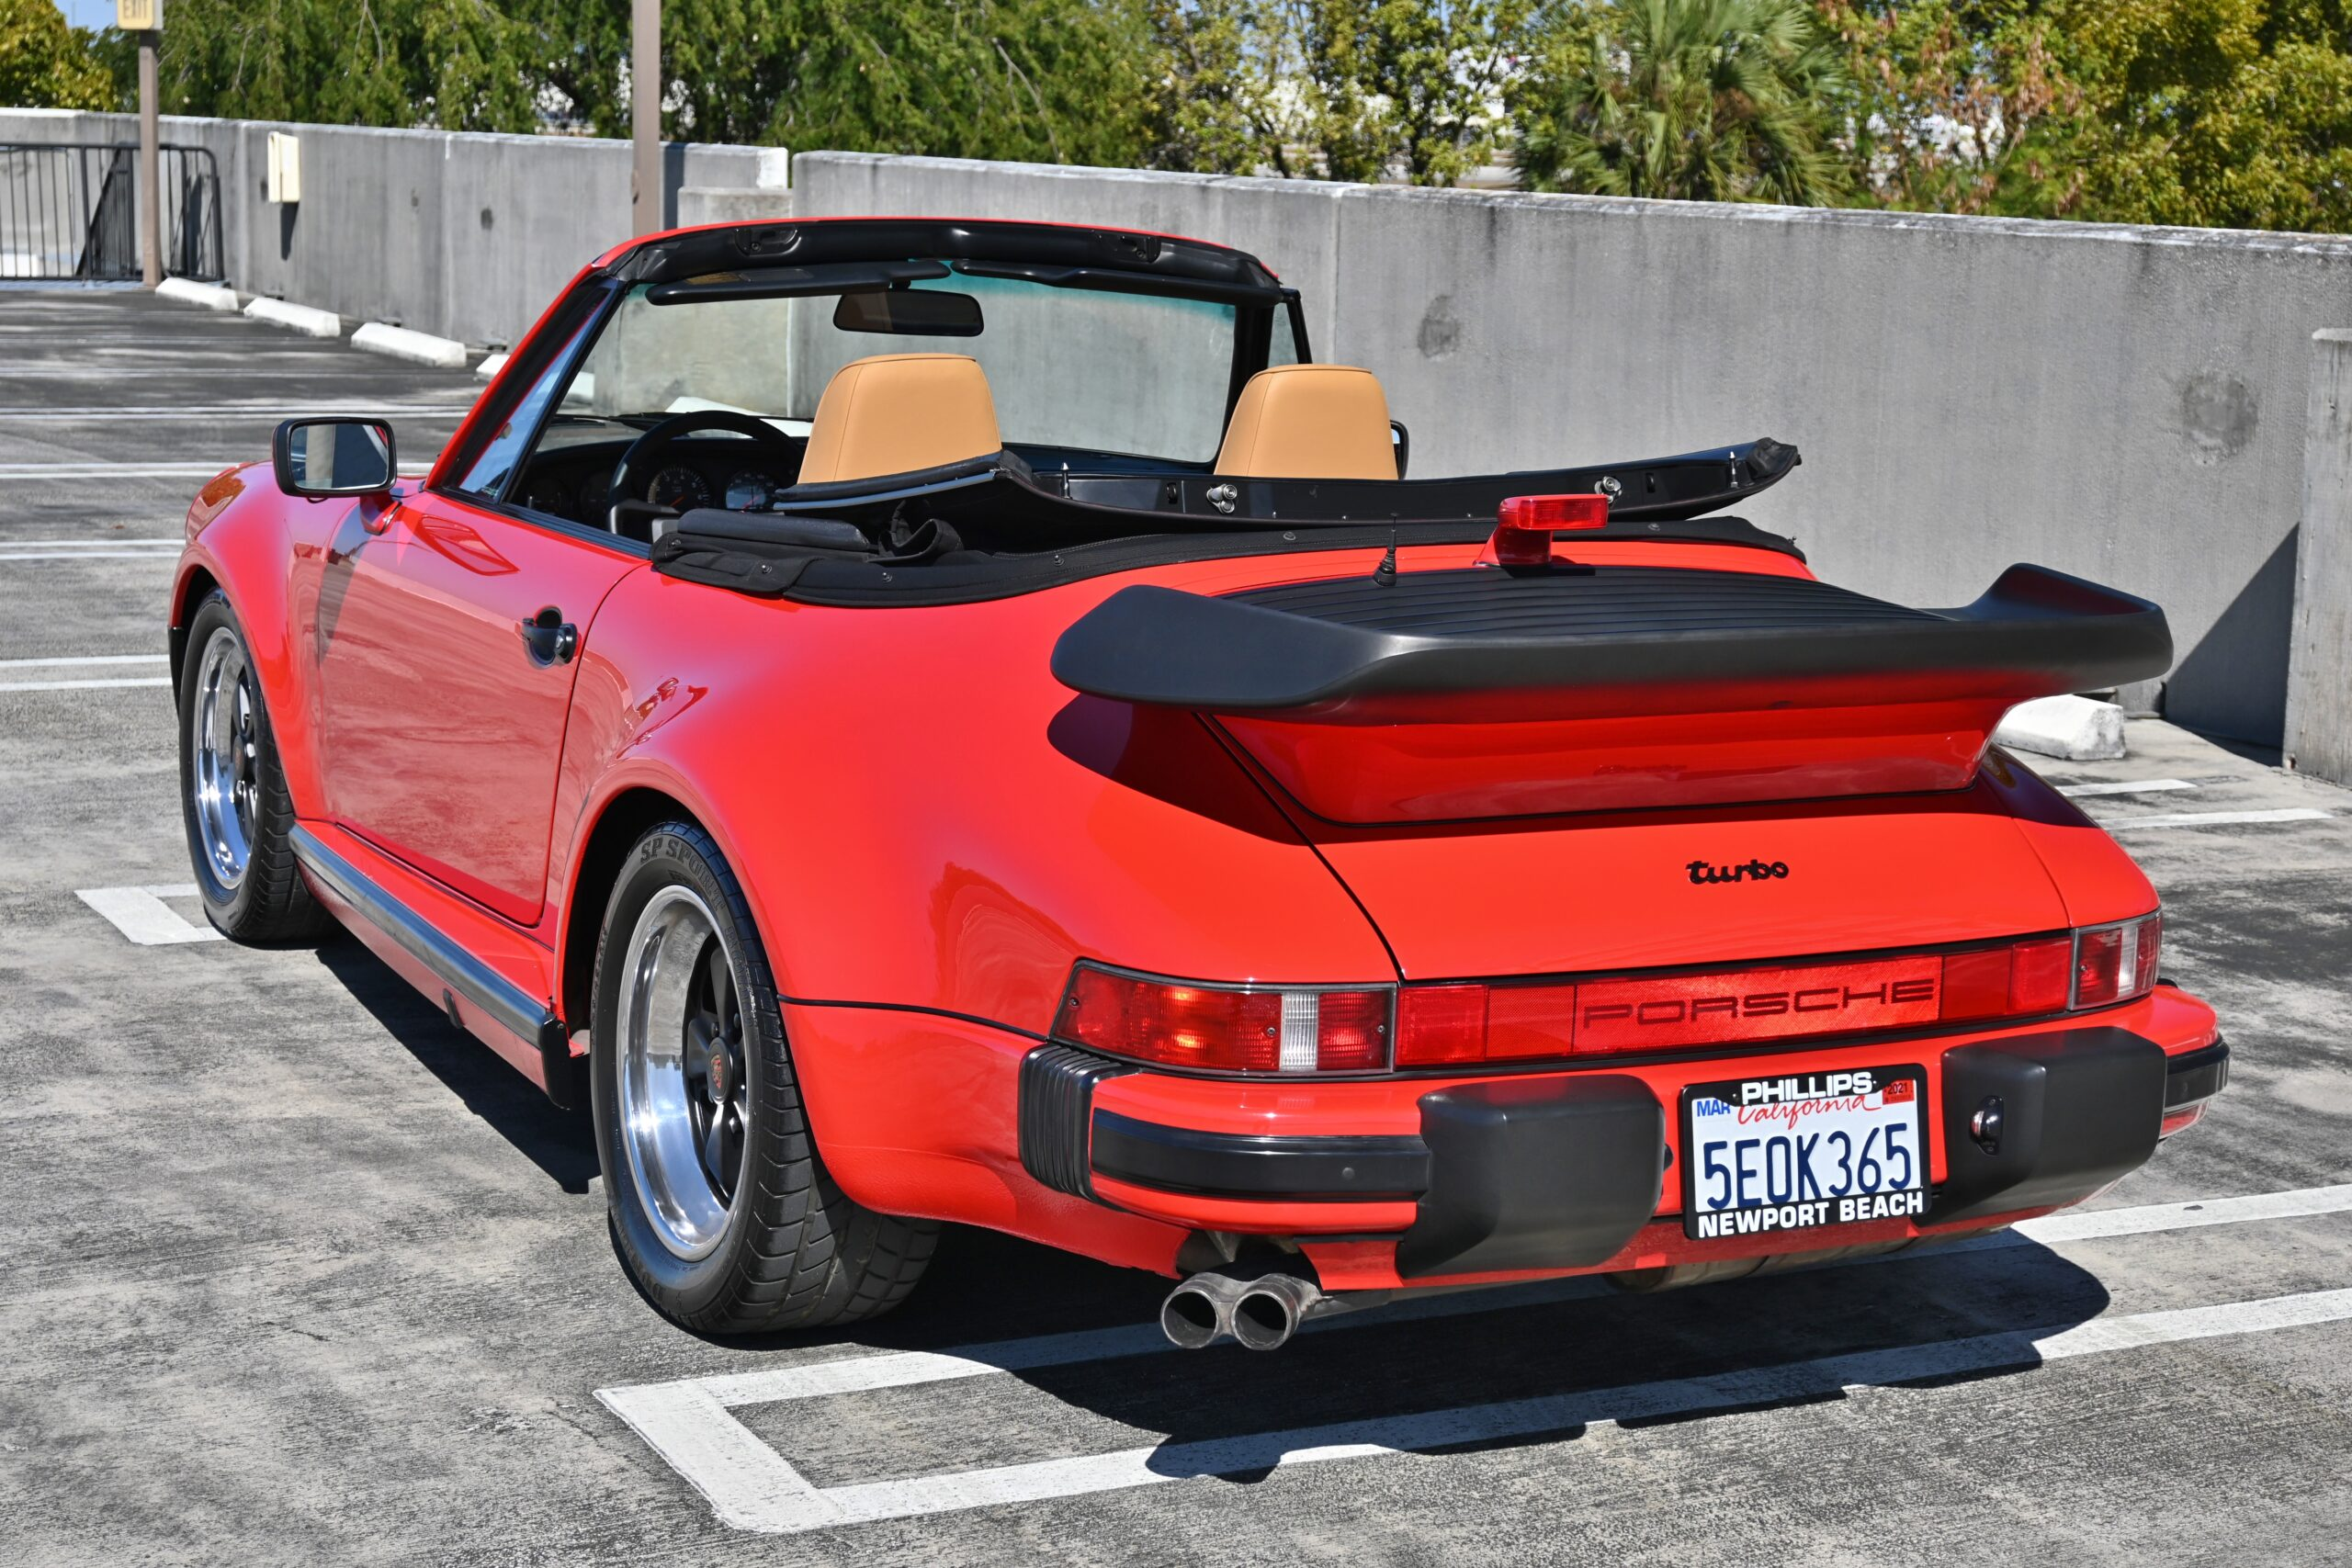 1989 Porsche 930 Turbo 911 California Car/Special Wishes Options/5 Speed/COA/ Engine Out Service/ Like New!